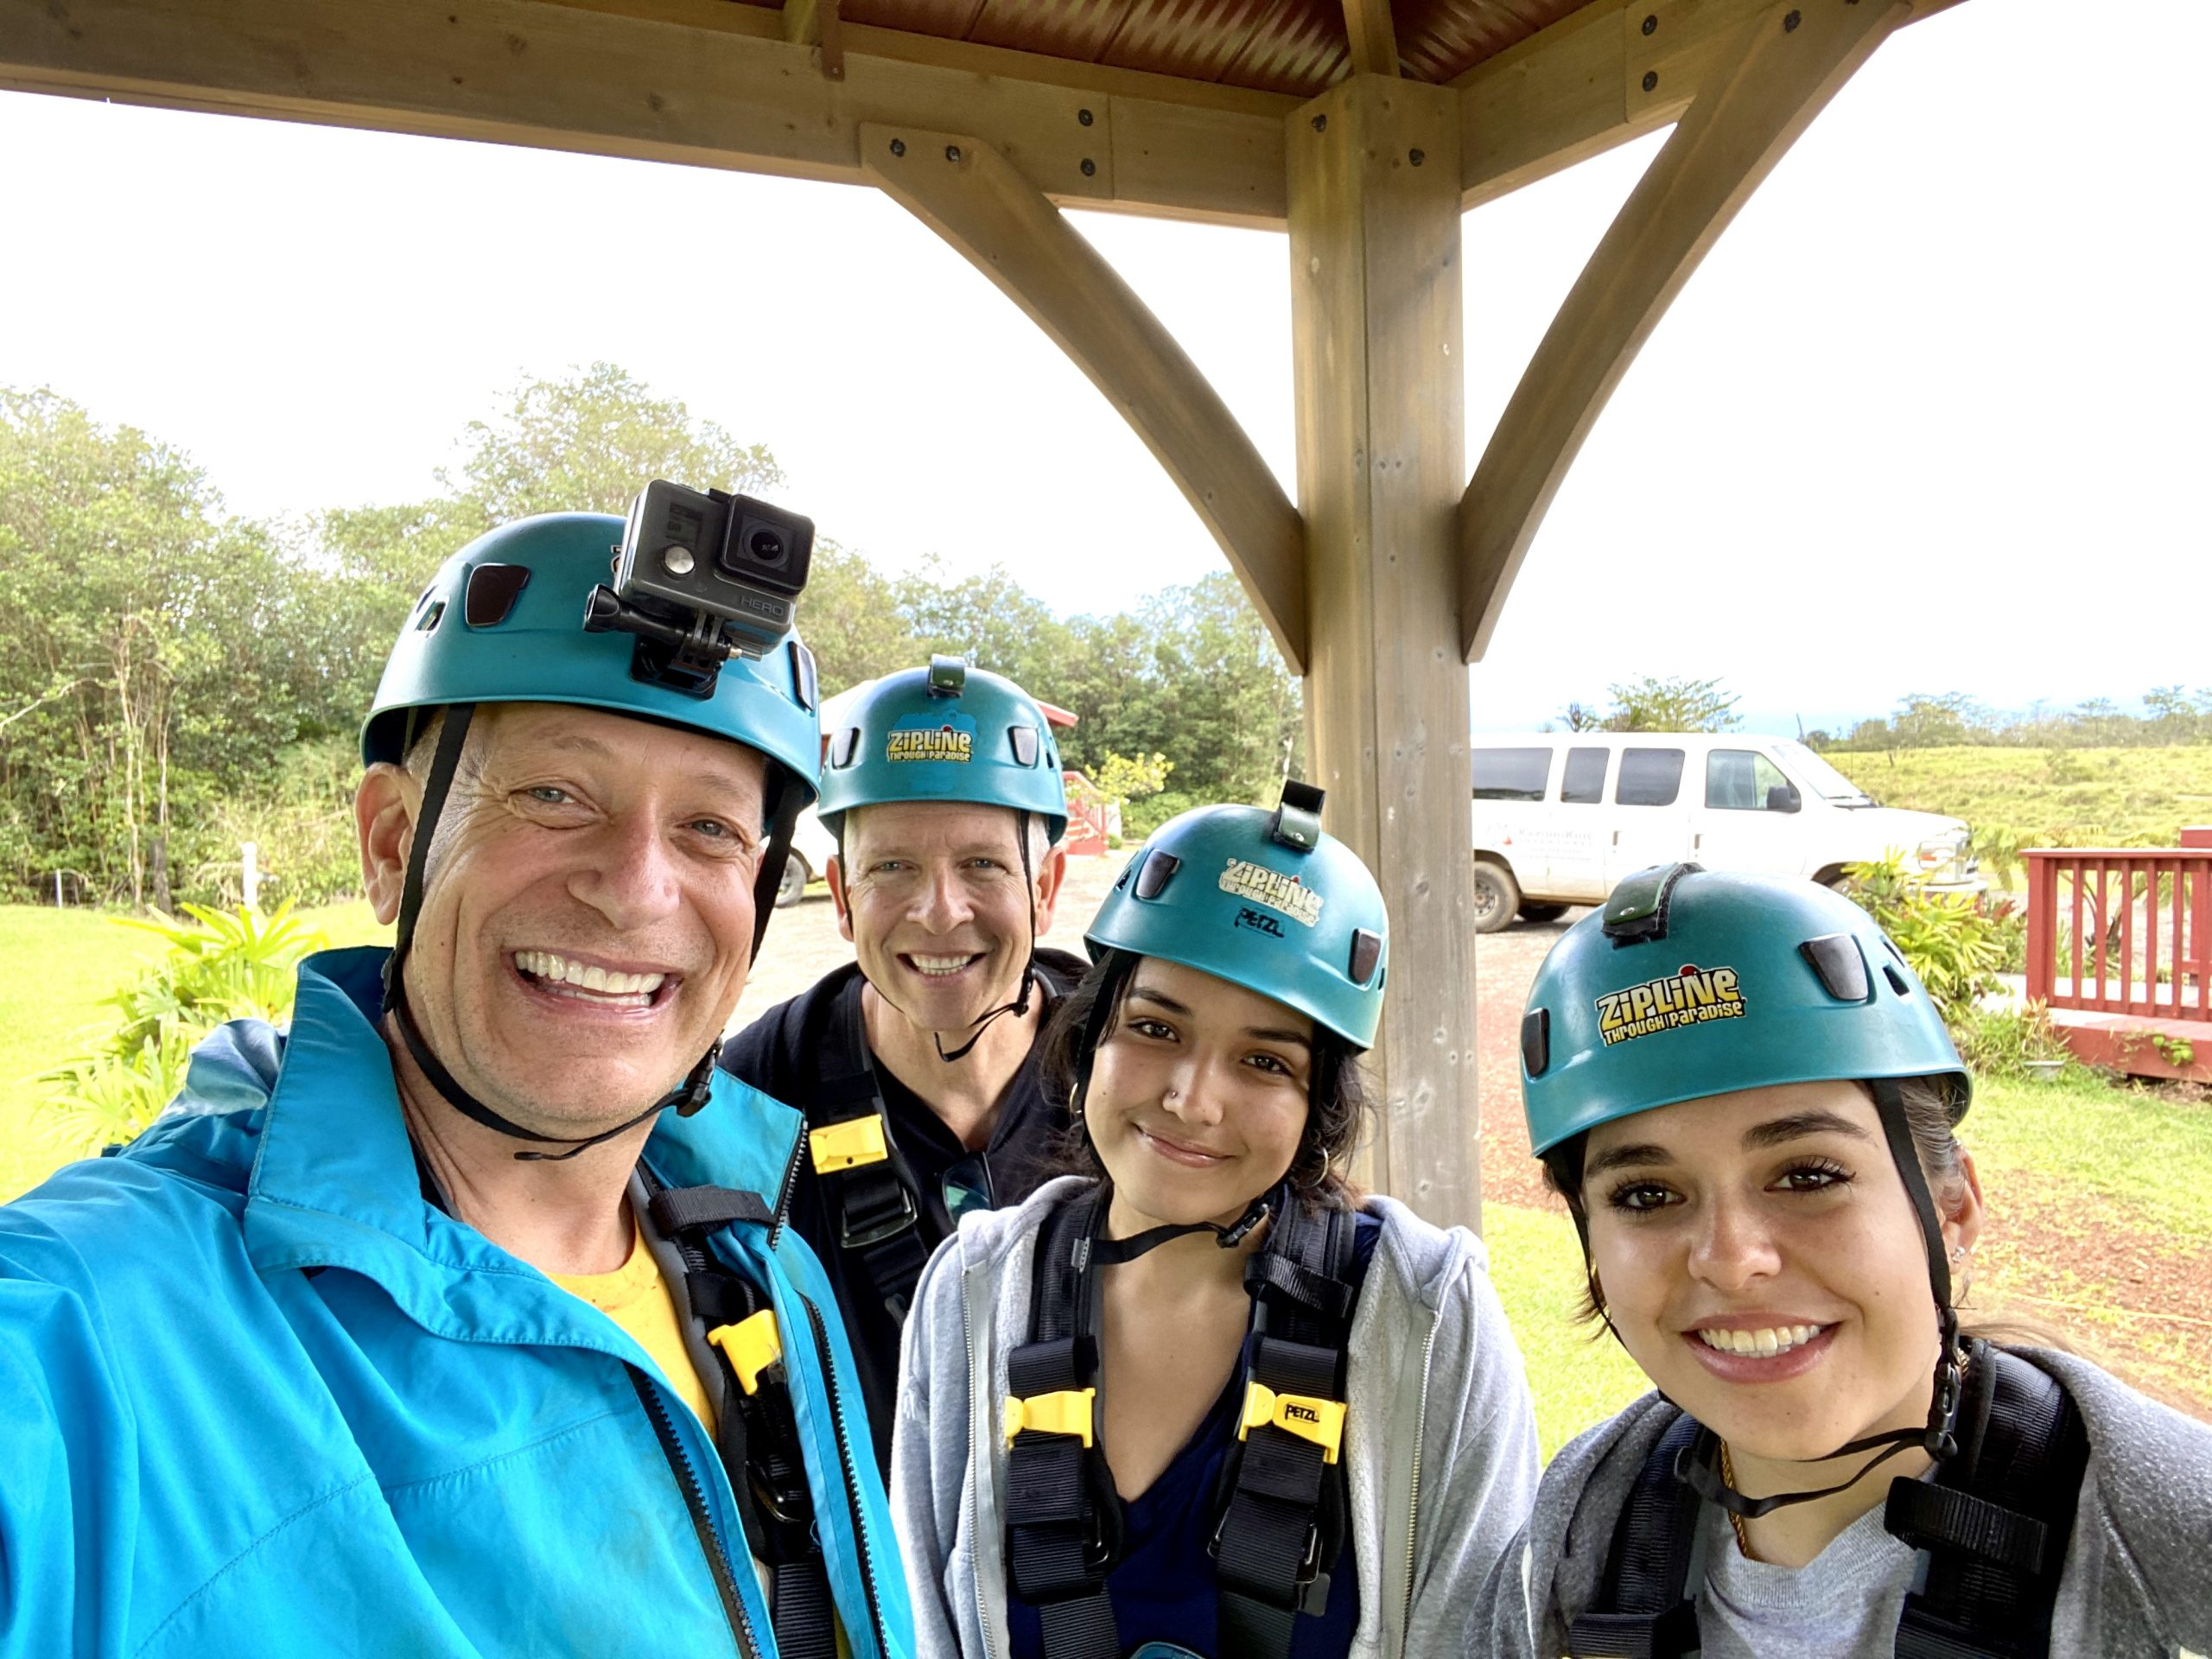 family with two dads in zipline helmets and gear with Kapohokine Adventures near Hilo, Hawaii